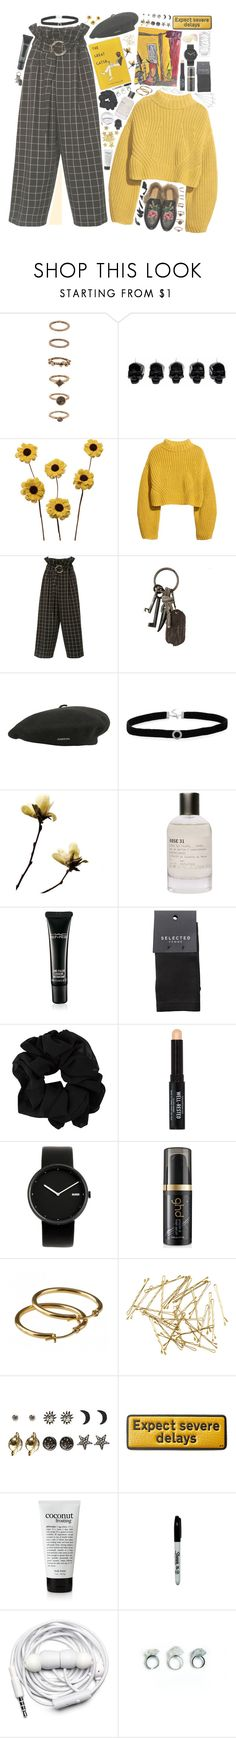 """MELLOW"" by banngtanboy ❤ liked on Polyvore featuring Forever 21, D.L. & Co., ZiaBella, H&M, Rejina Pyo, AllSaints, kangol, BillyTheTree, WALL and Le Labo"